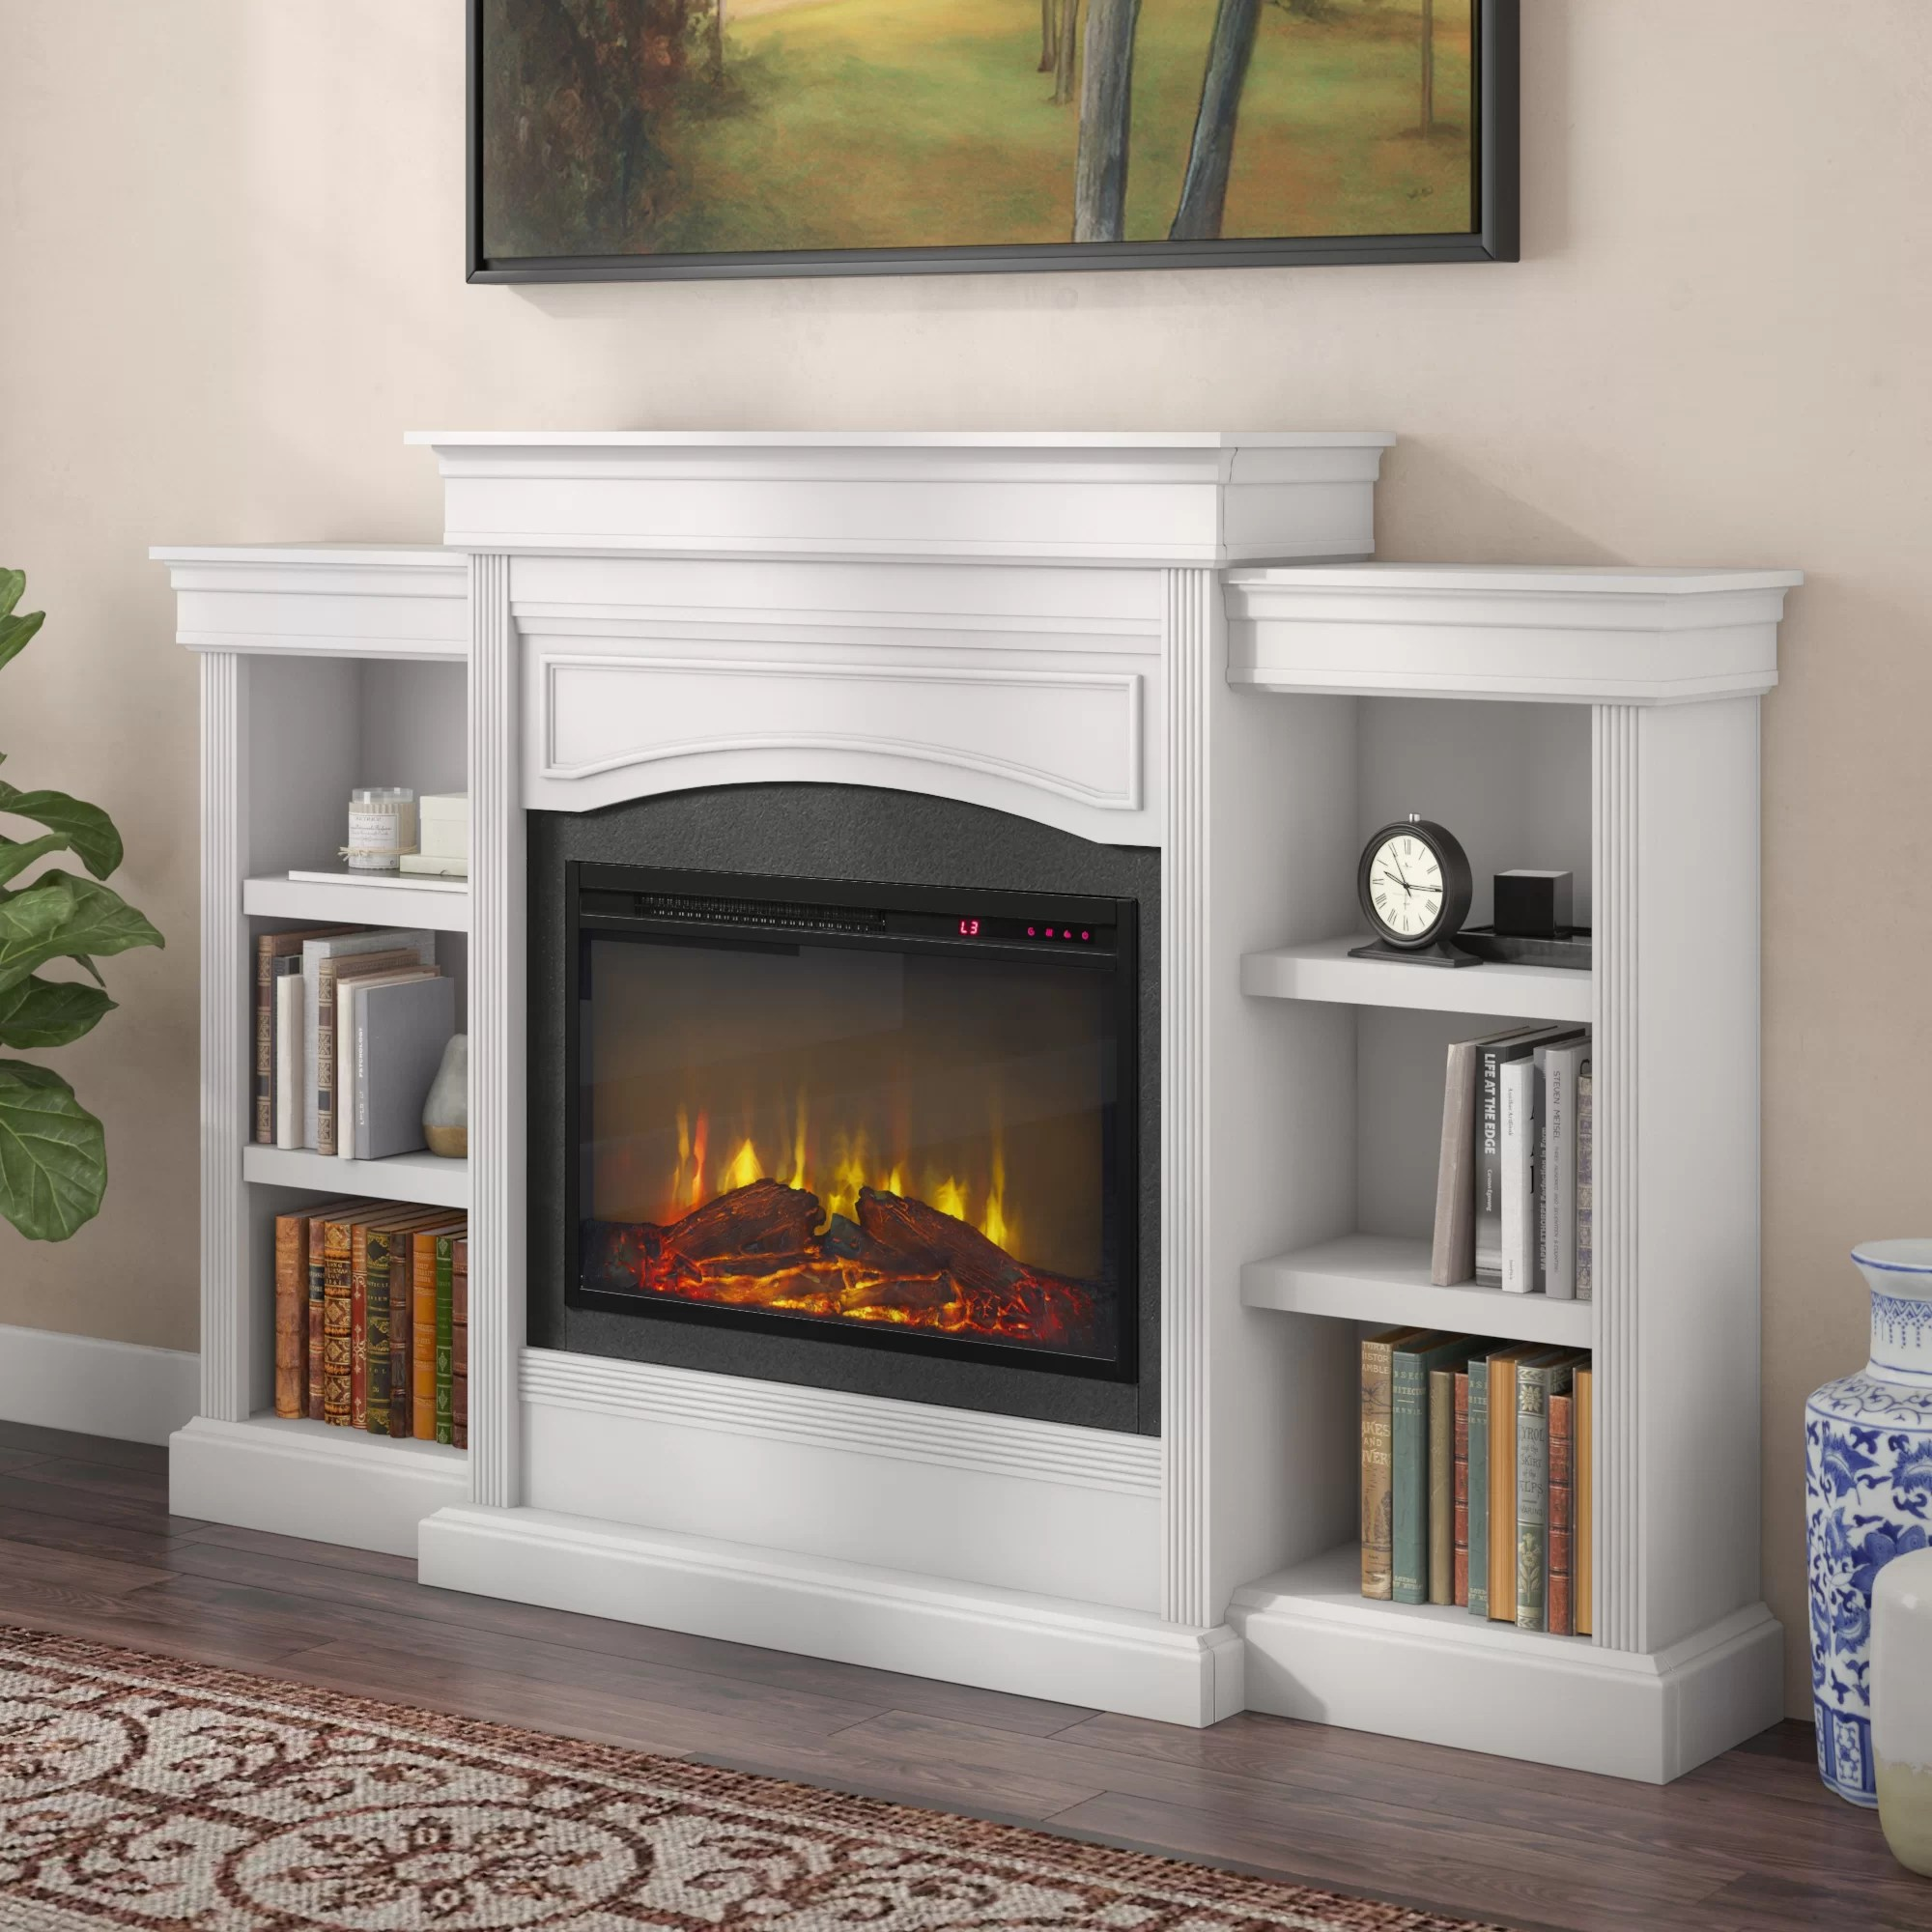 Living Room Electric Fireplace Allsop Mantel Wall Mounted Electric Fireplace